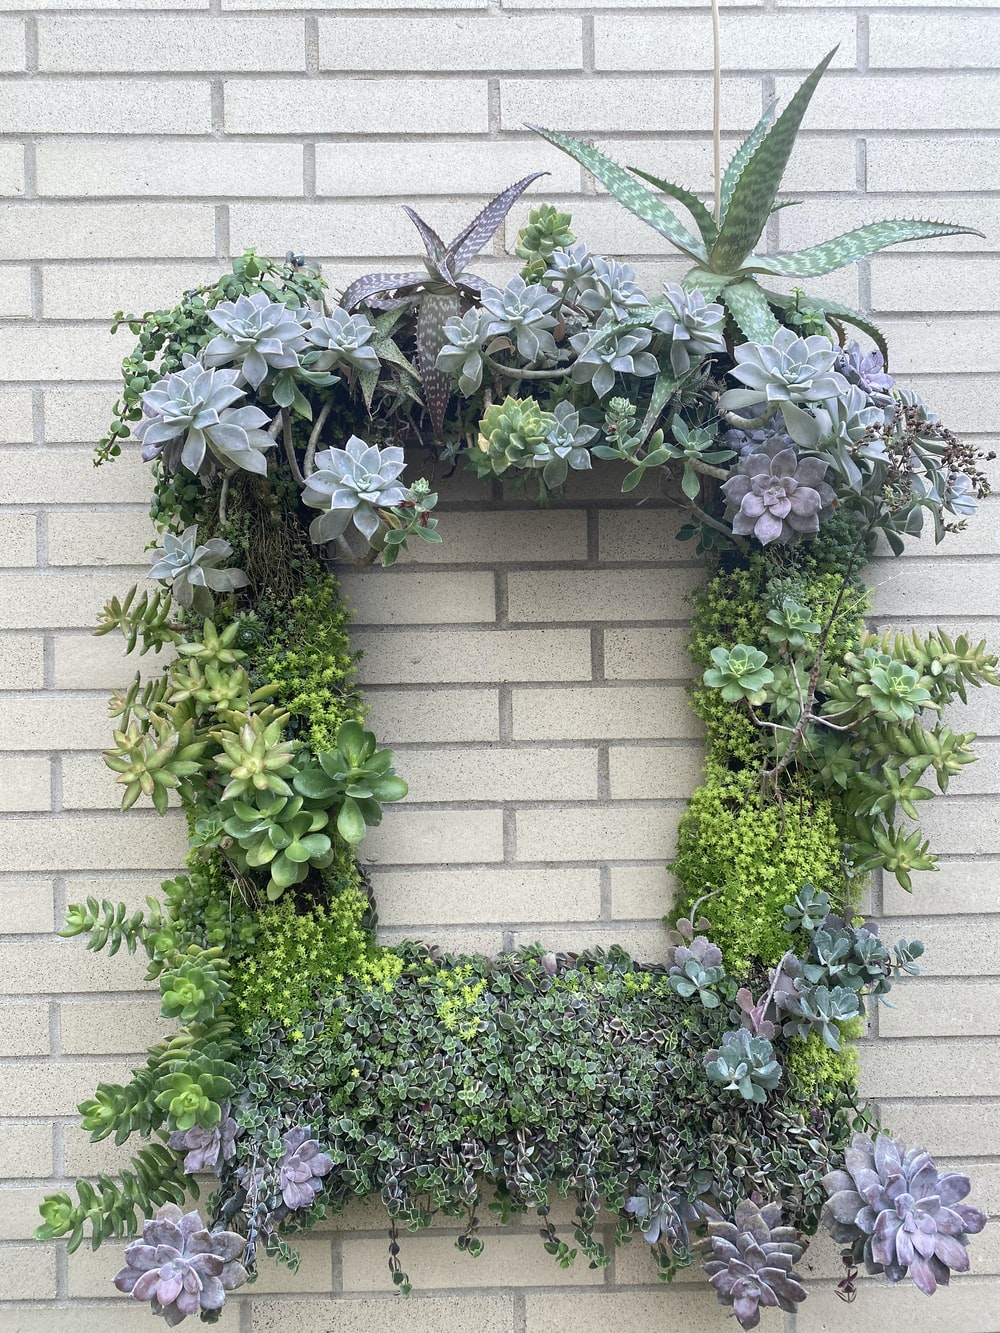 green plant on brown brick wall